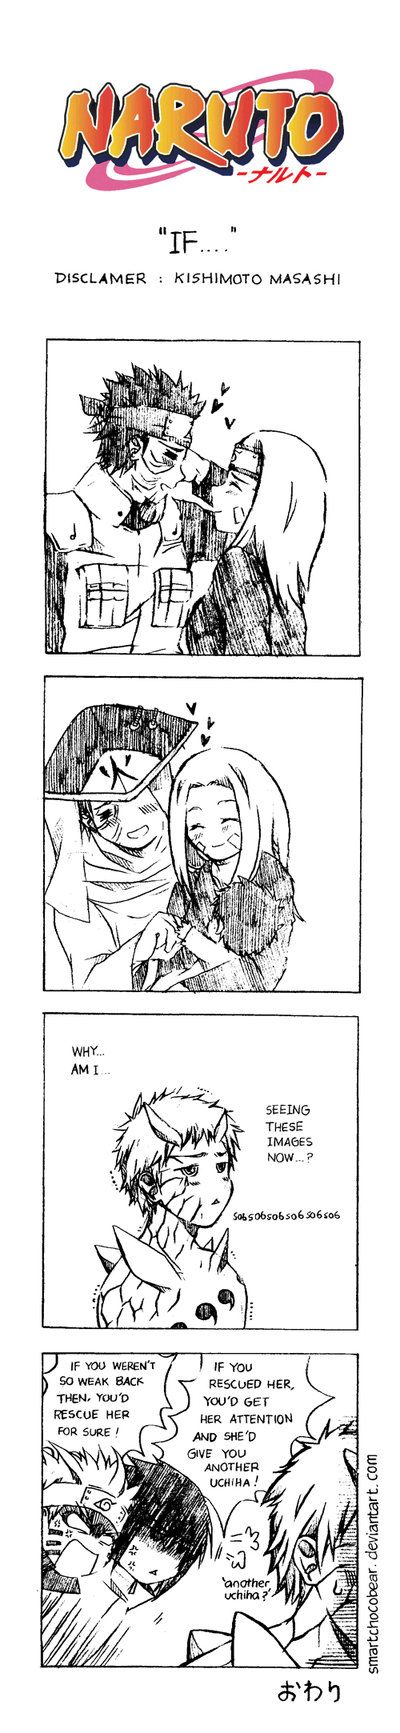 Naruto Doujinshi - If... by SmartChocoBear on DeviantArt